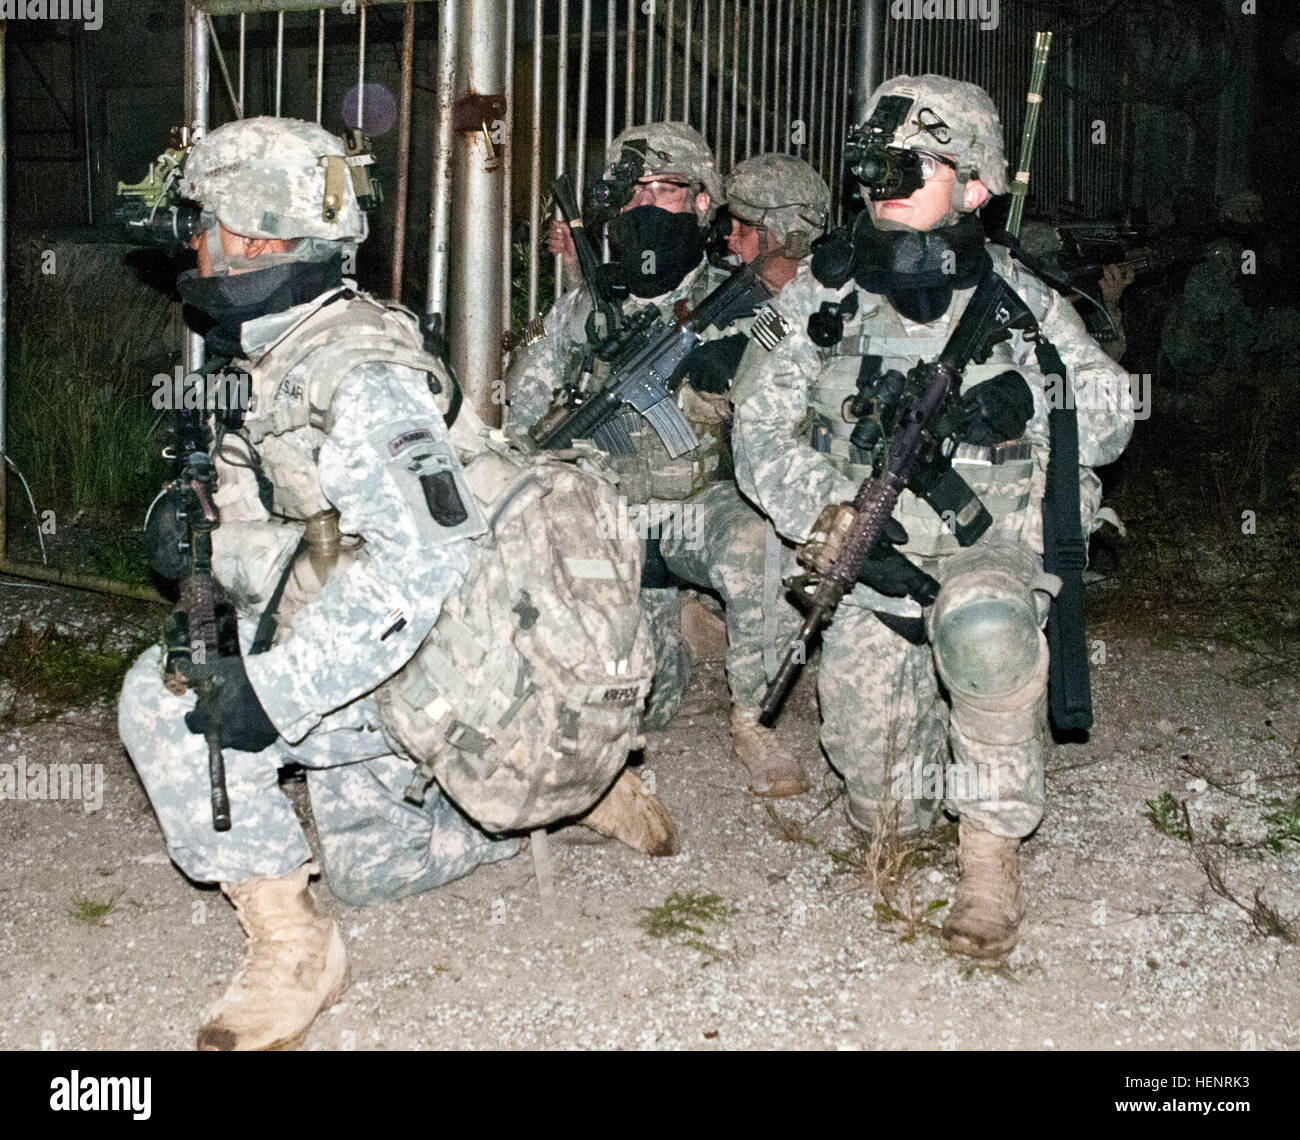 Army Sgt. 1st Class Bryon O. Krepcho (left), a Dallas, Texas, native serving as a platoon sergeant in Company B, Stock Photo